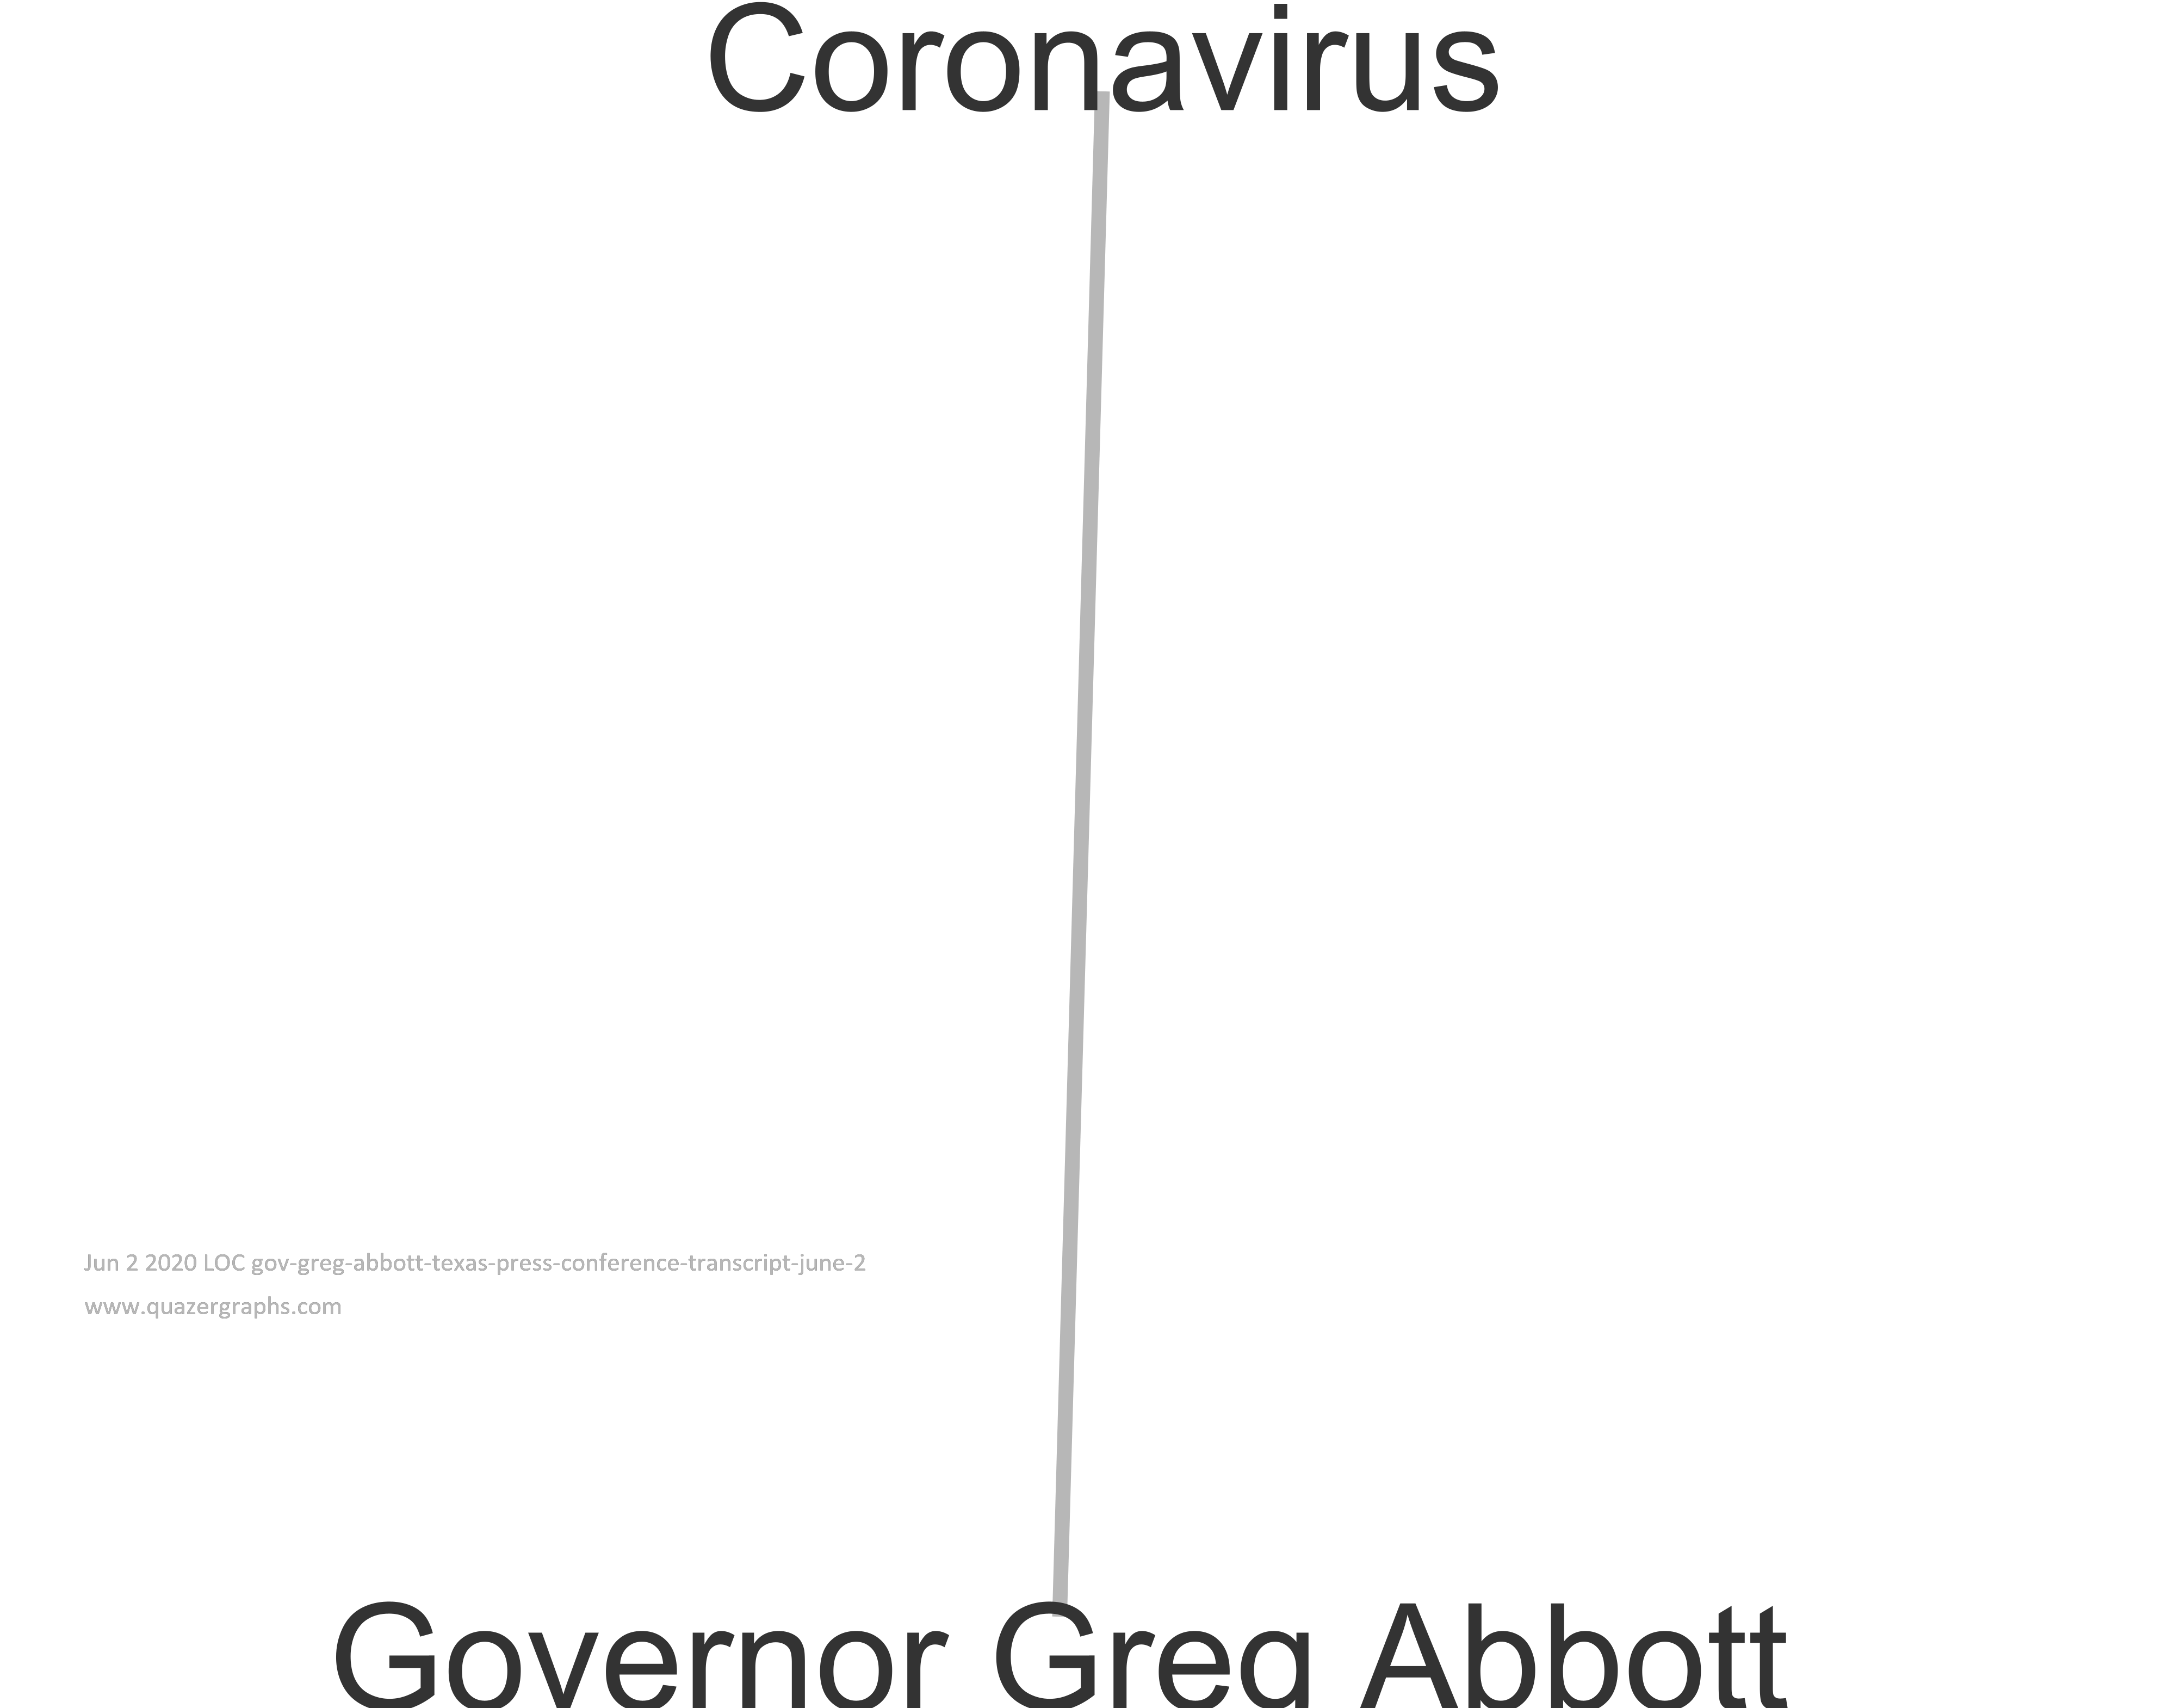 Jun 2 2020 LOC gov-greg-abbott-texas-press-conference-transcript-june-2